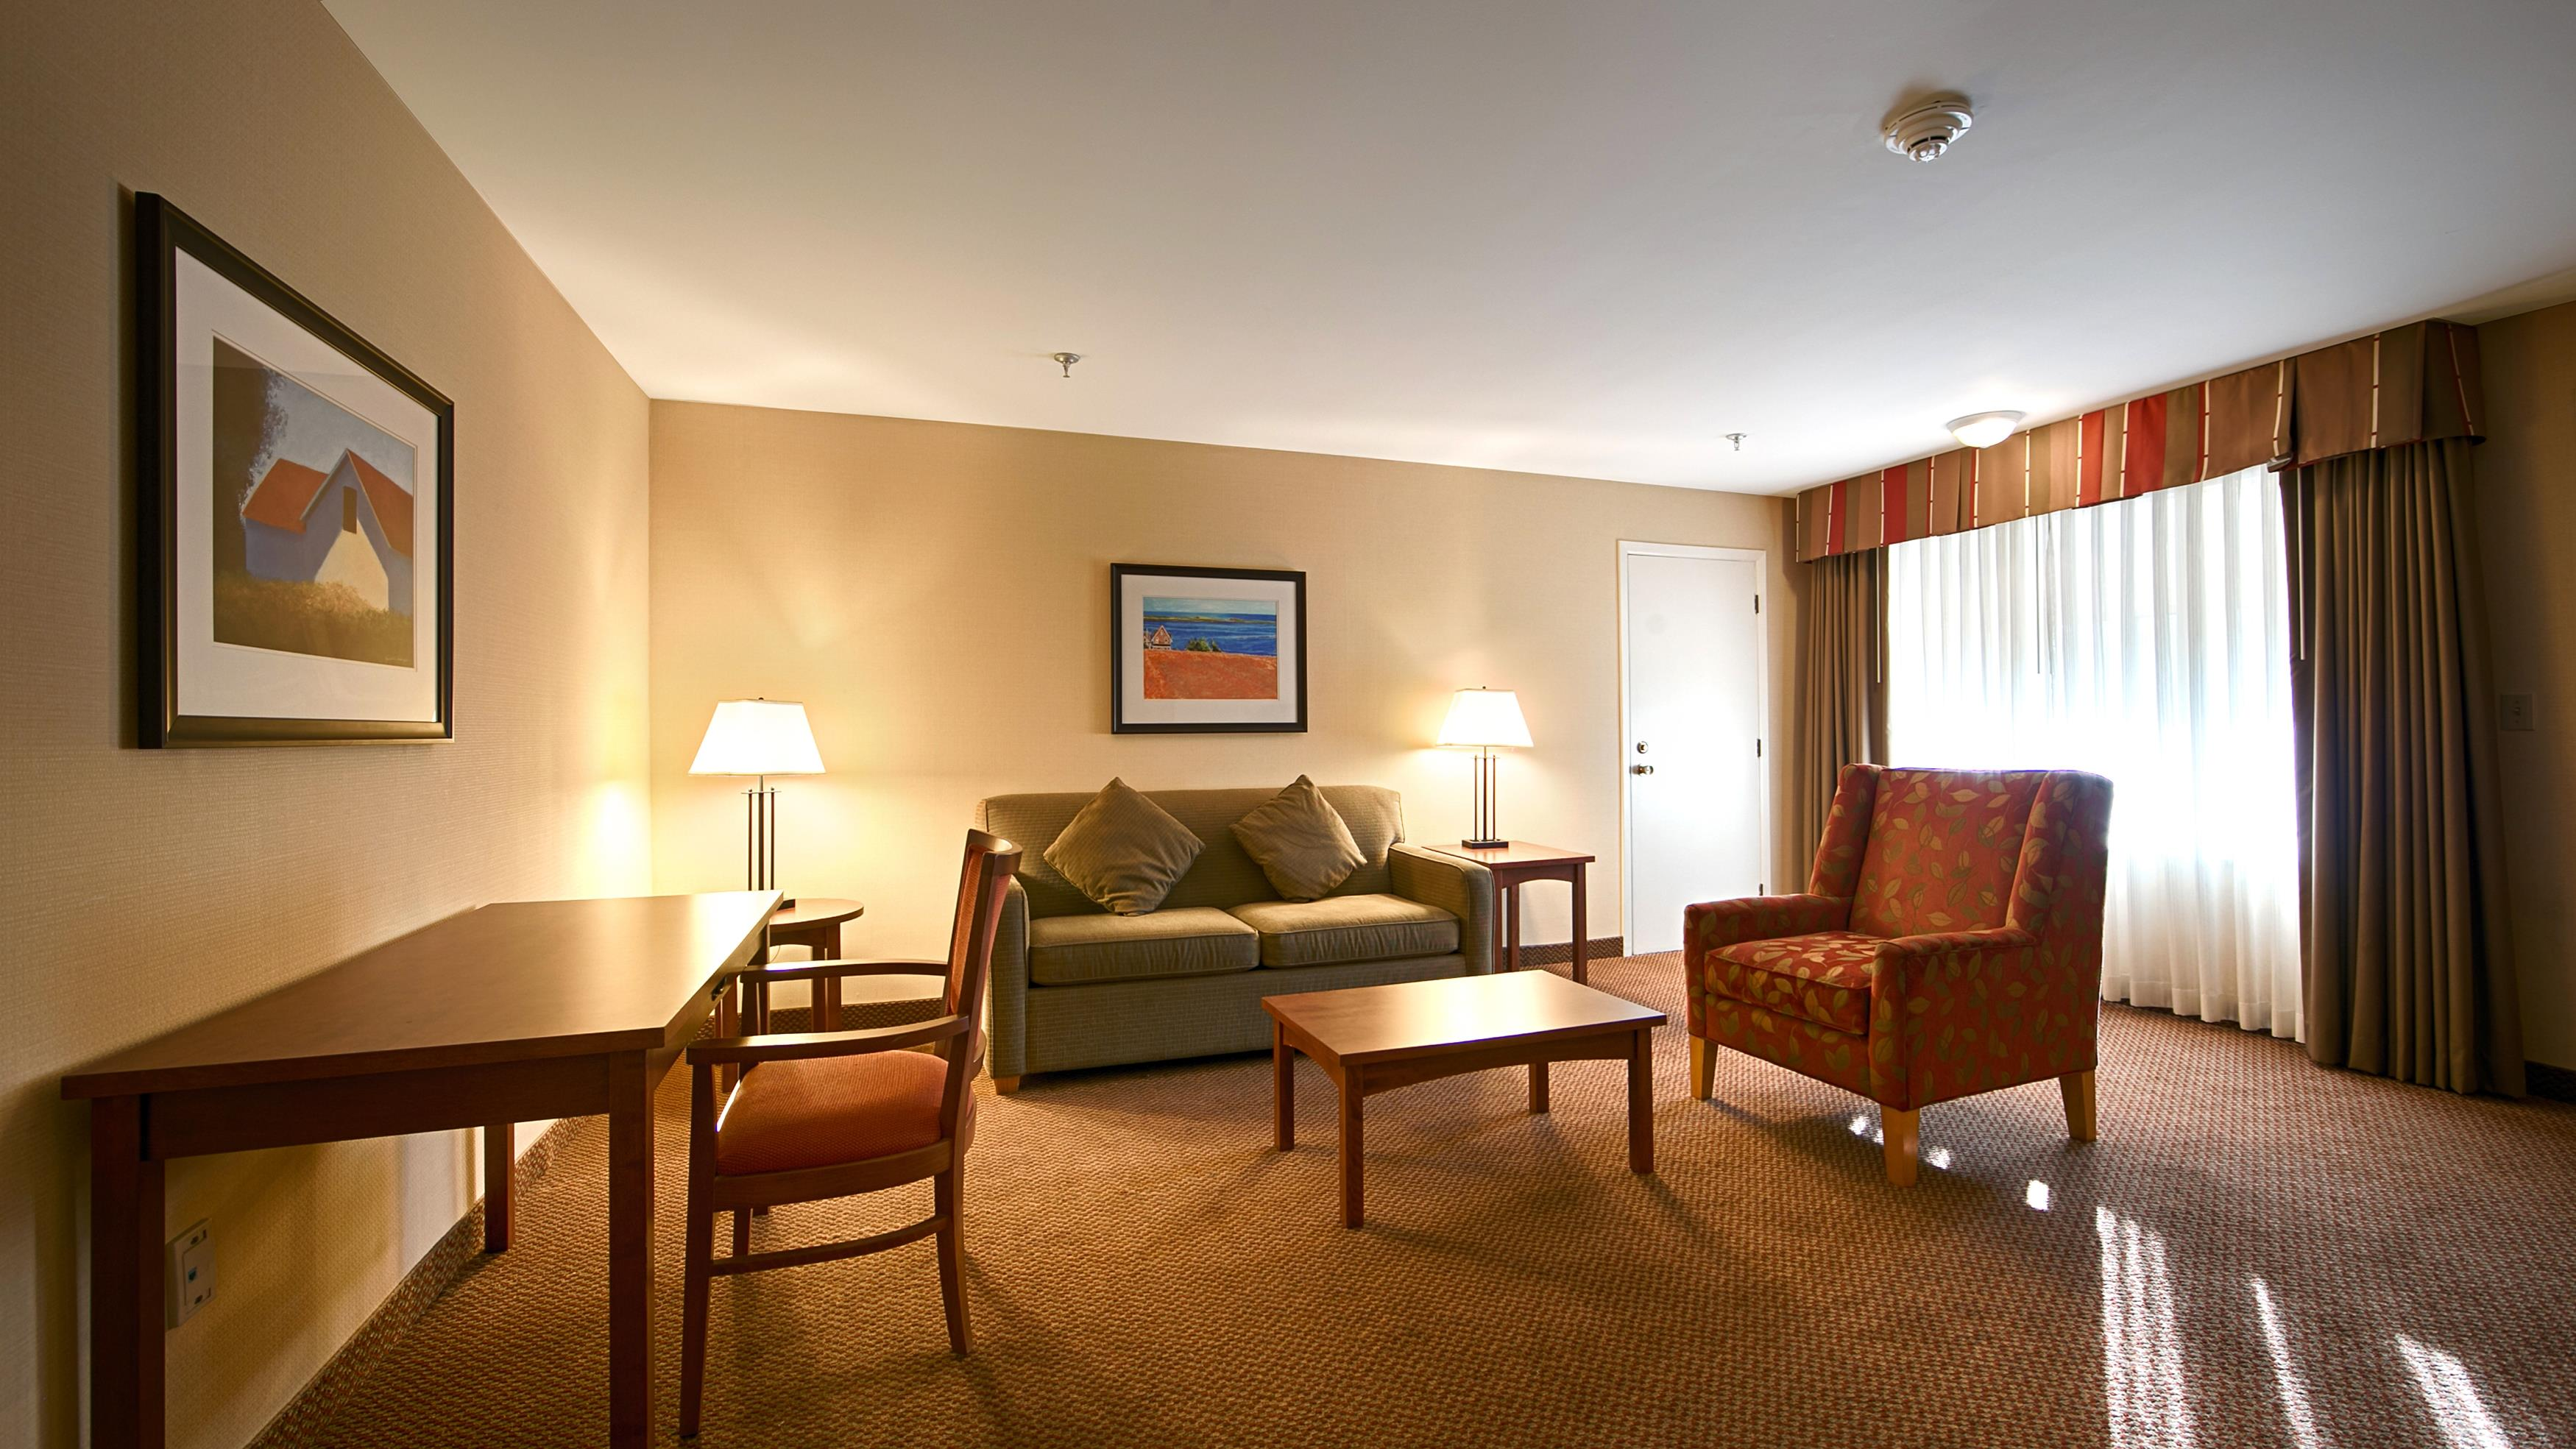 Charlottetown Inn & Conference Centre in Charlottetown: Suite